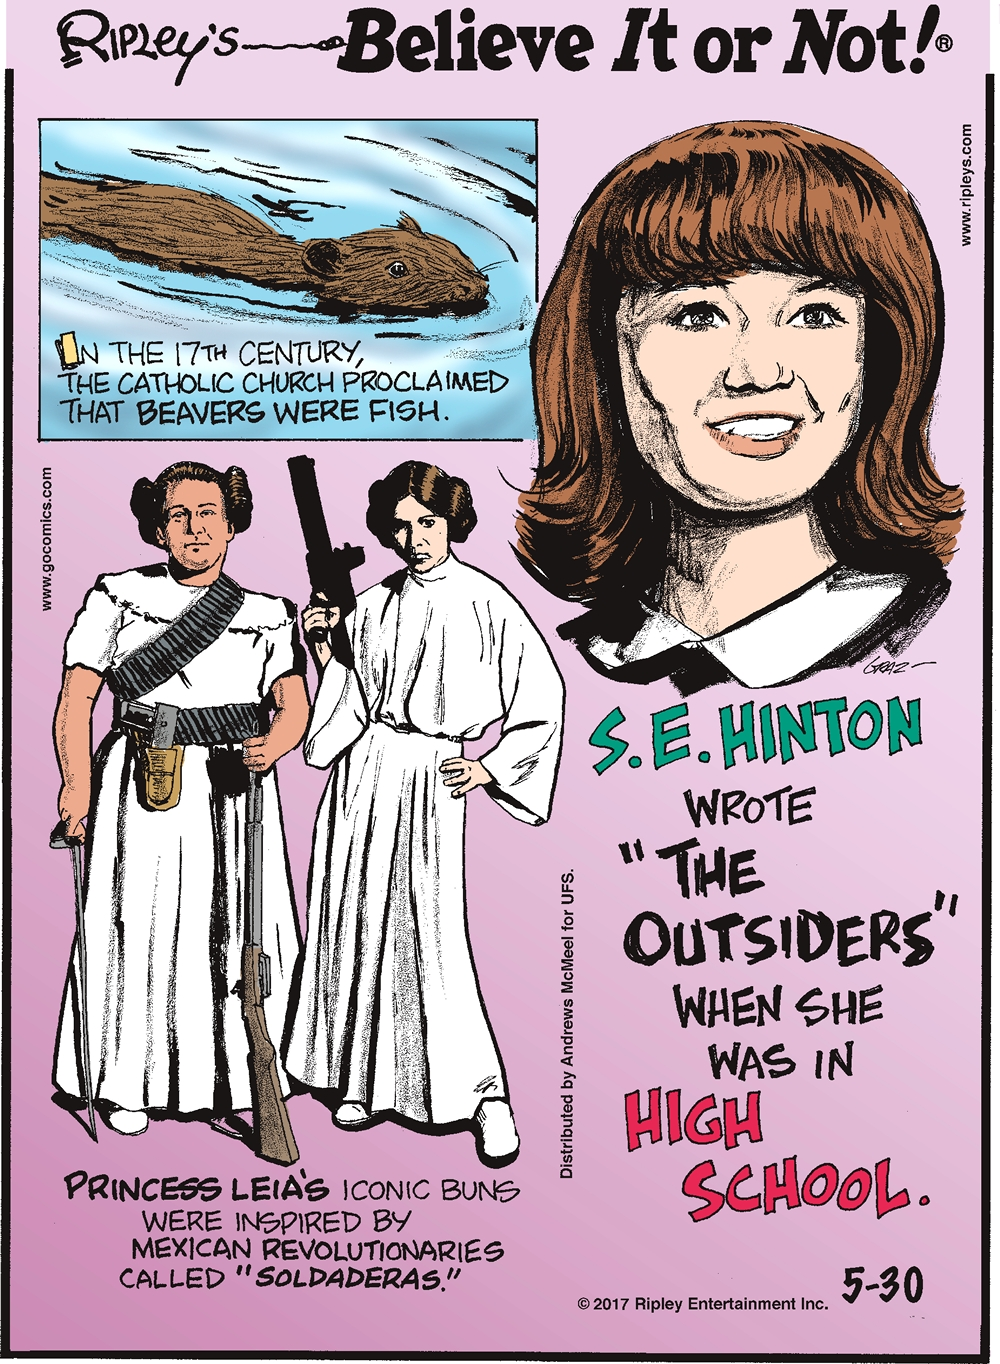 "In the 17th Century, the Catholic Church proclaimed that beavers were fish.-------------------- S.E. Hinton wrote ""The Outsiders"" when she was in high school.--------------------- Princess Leia's iconic buns were inspired by Mexican revolutionaries called ""Soldaderas."""